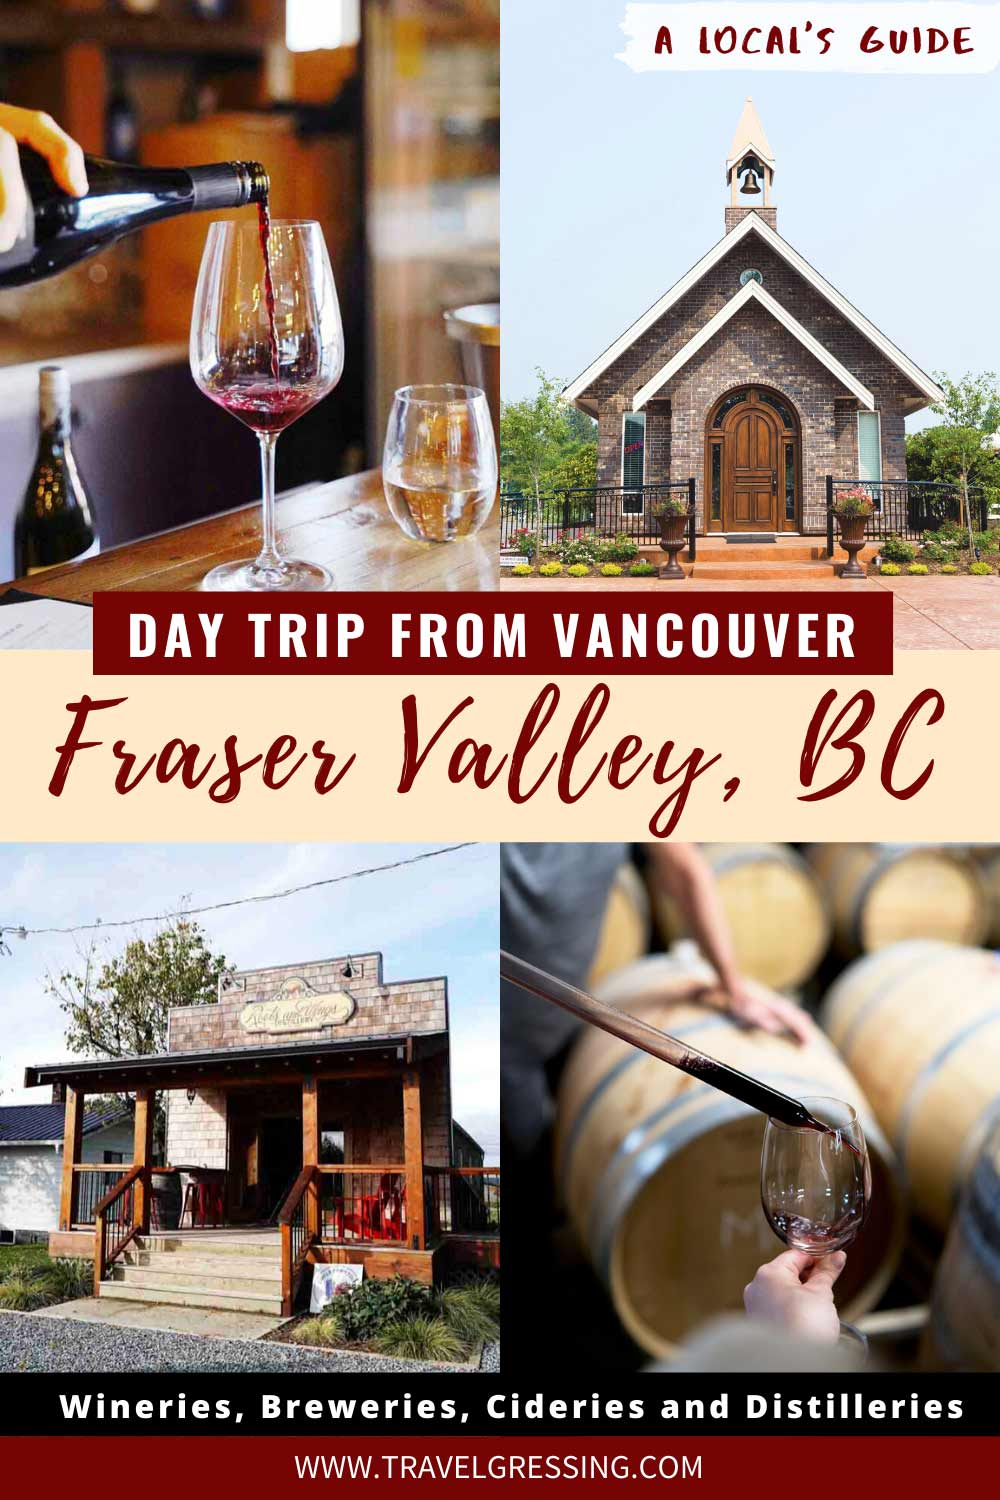 Wineries, Breweries, Cideries and Distilleries in Canada's Fraser Valley BC